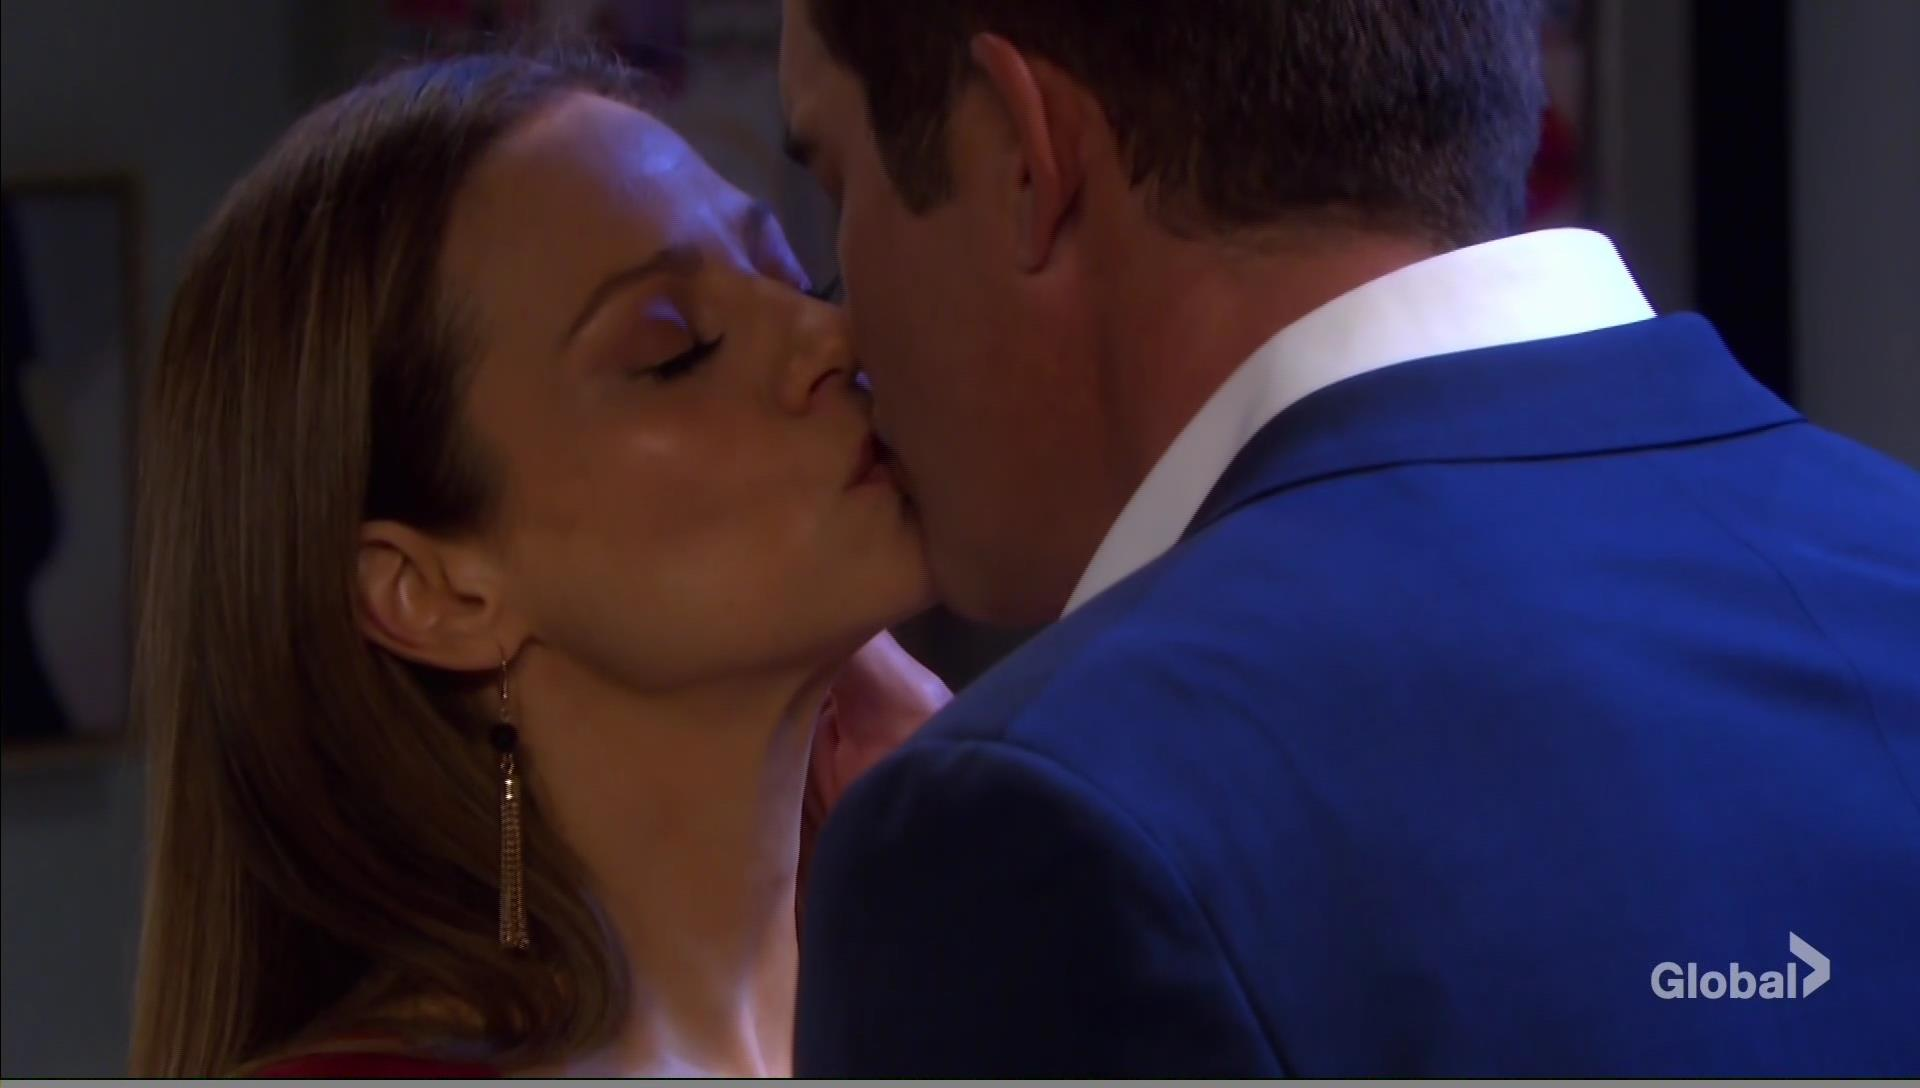 rafe ava kiss goodnight days of our lives